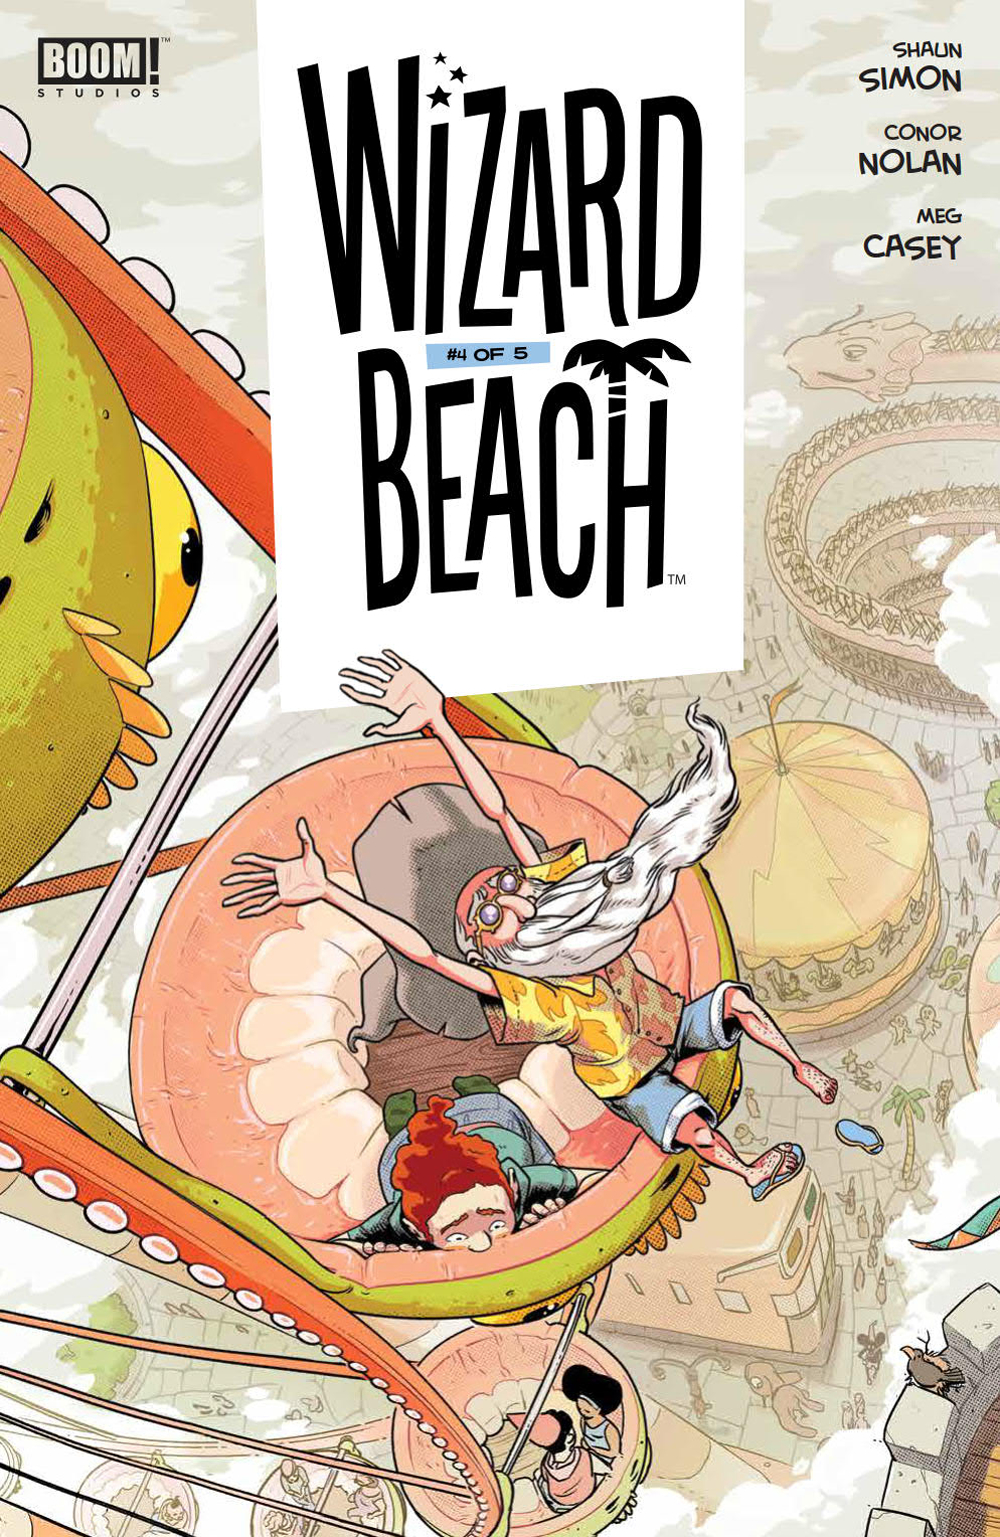 WIZARD BEACH #4 (OF 5)